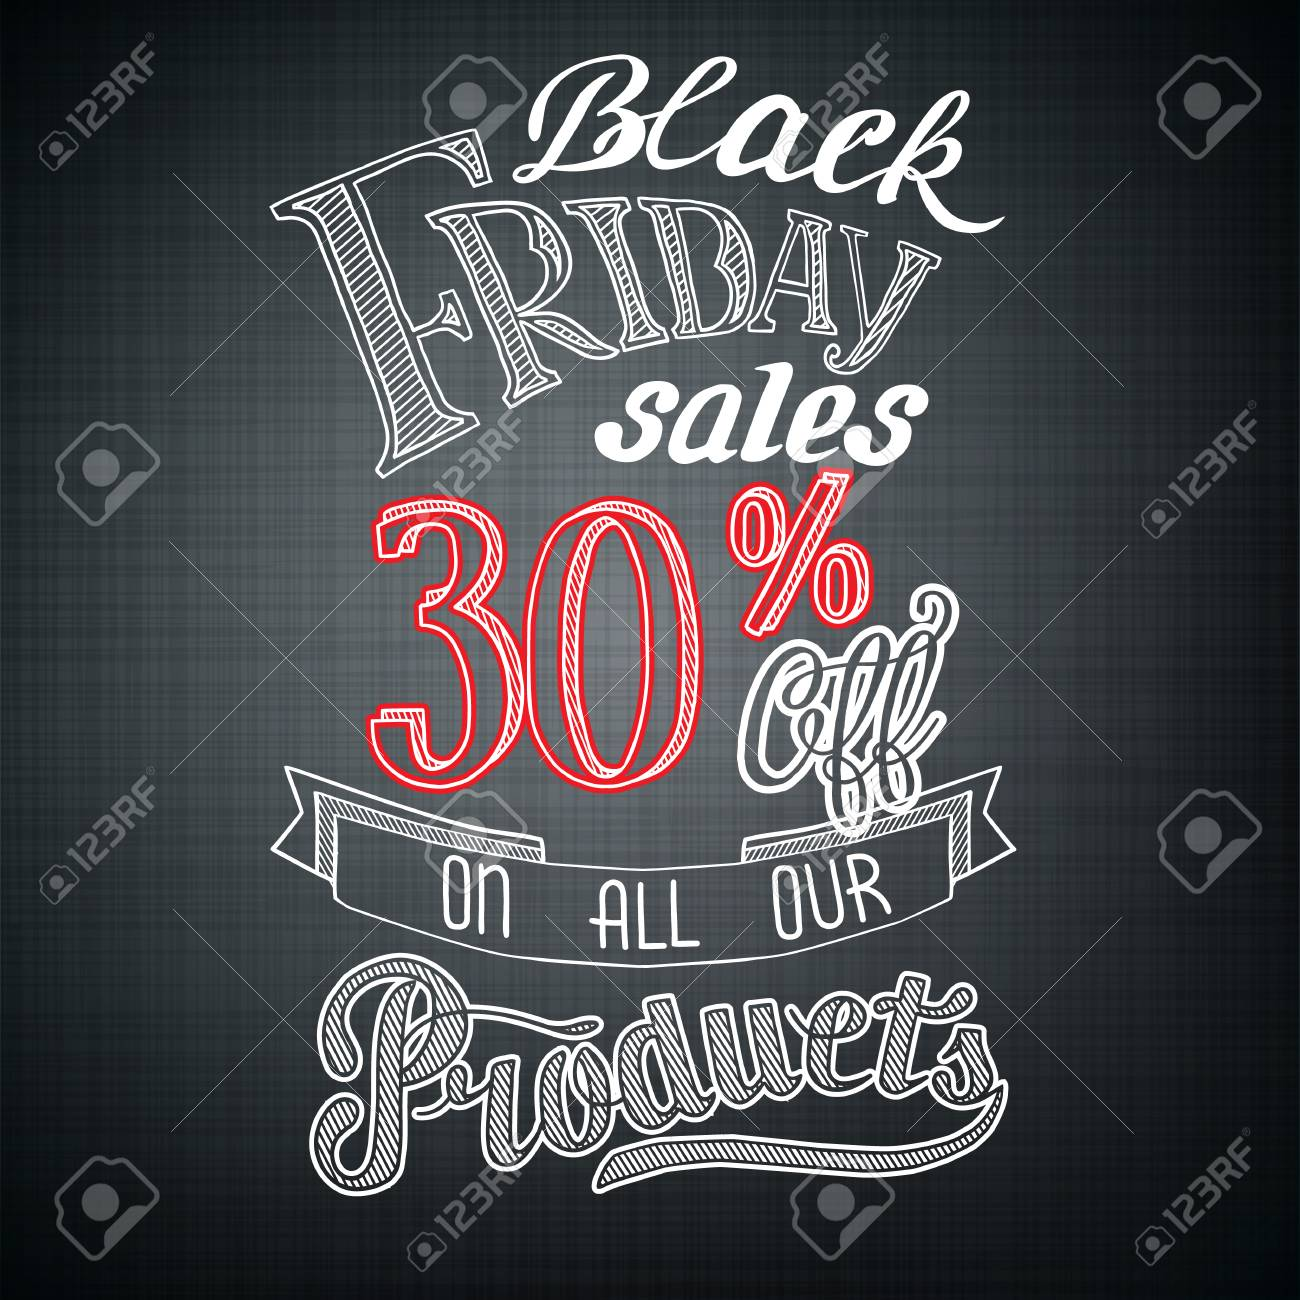 Typographic Black Friday Announcement With Advertising Text And Royalty Free Cliparts Vectors And Stock Illustration Image 128174169